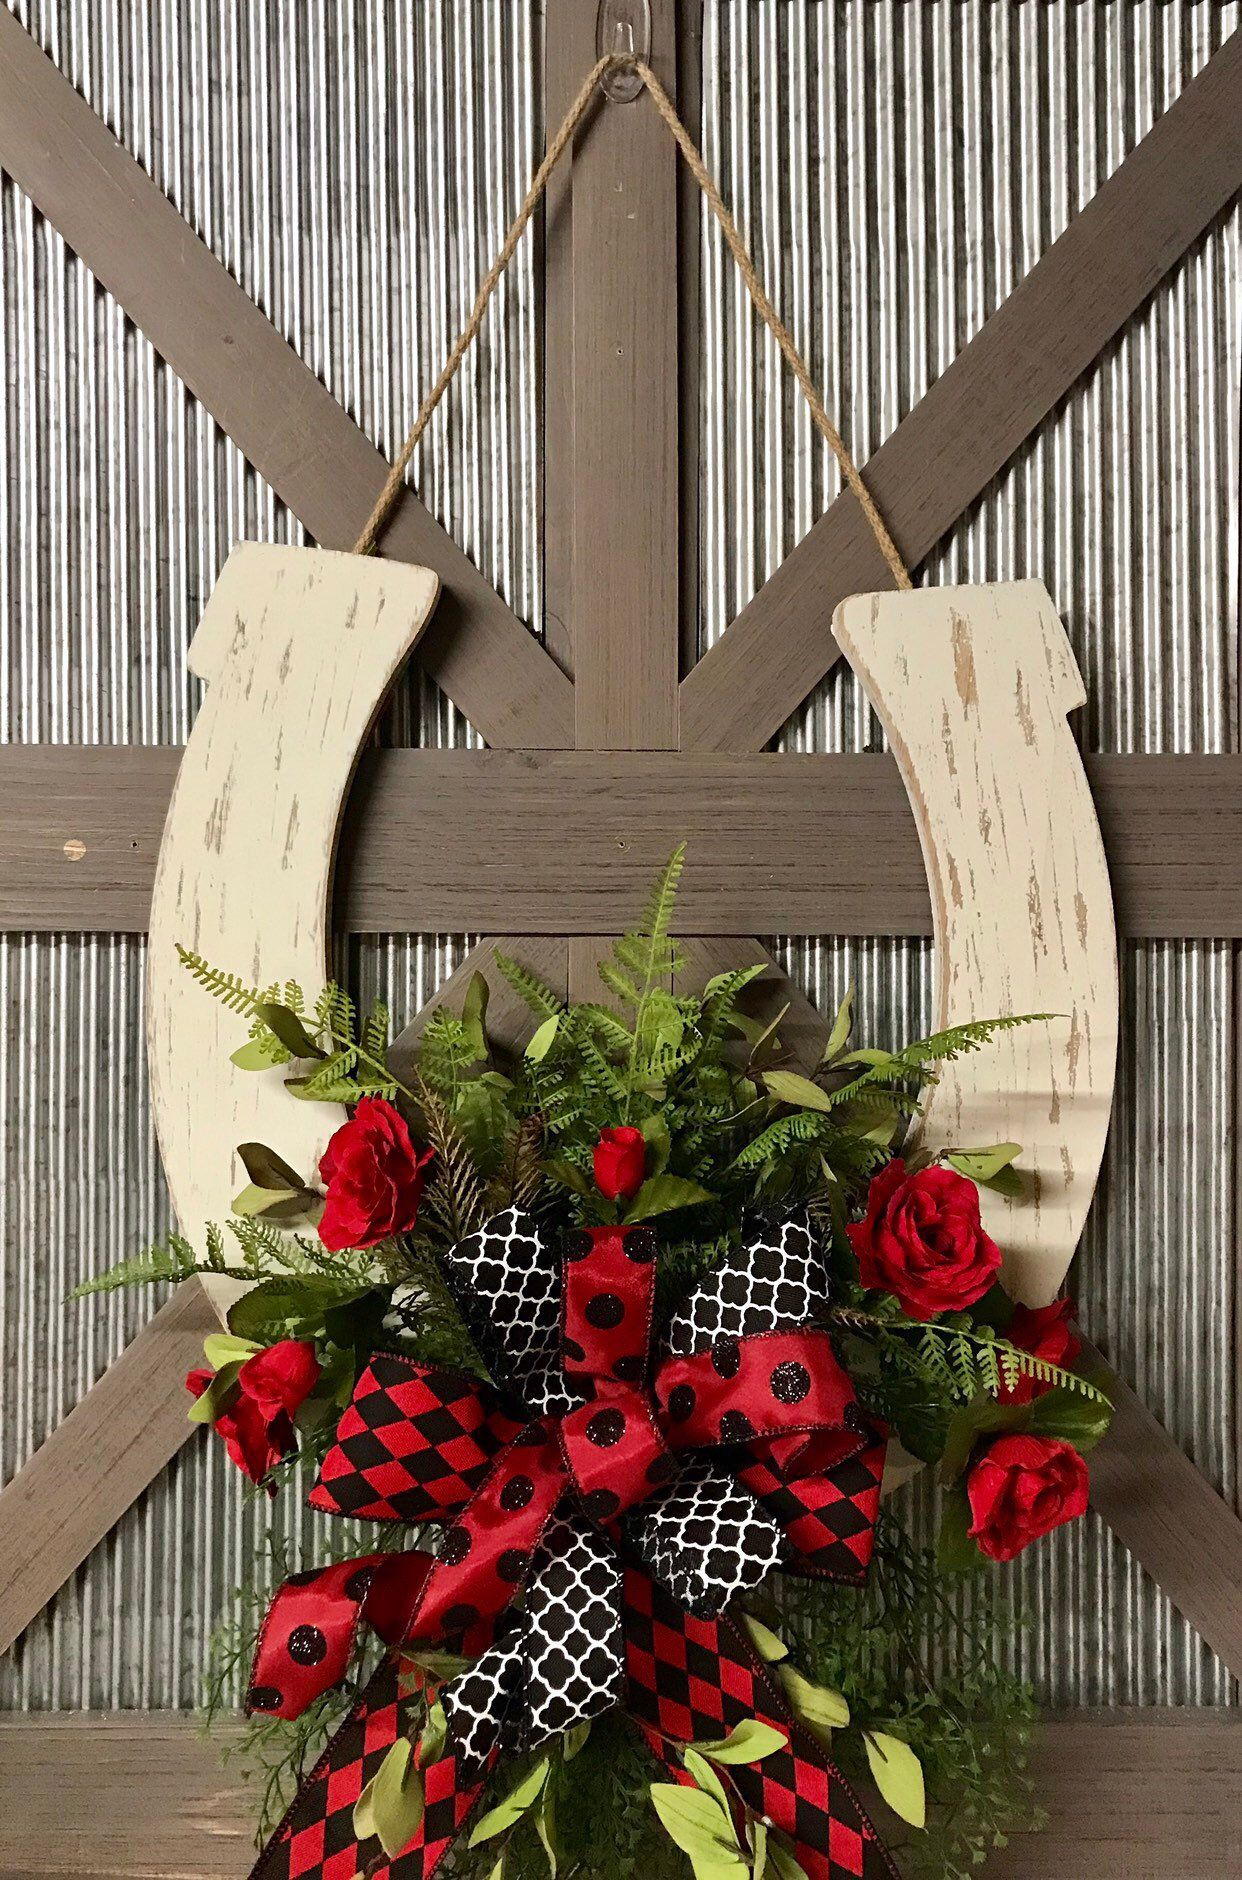 Photo of Derby Wreath for Front Door, Kentucky Derby, Horseshoe Wreath, Wedding Gift, Derby Decor, Roses, Horse Racing, Hostess, Ready To Ship